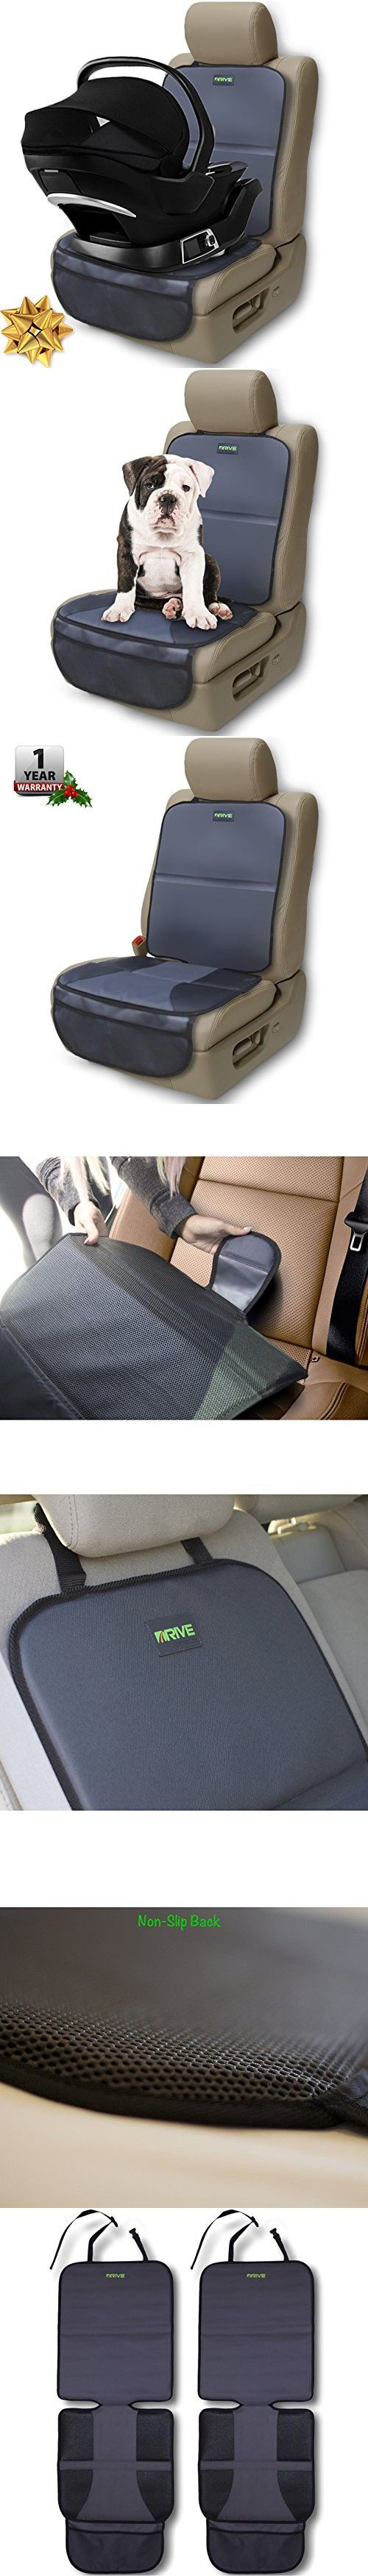 25 best ideas about car seat protector on pinterest seat protector leather car seat covers. Black Bedroom Furniture Sets. Home Design Ideas